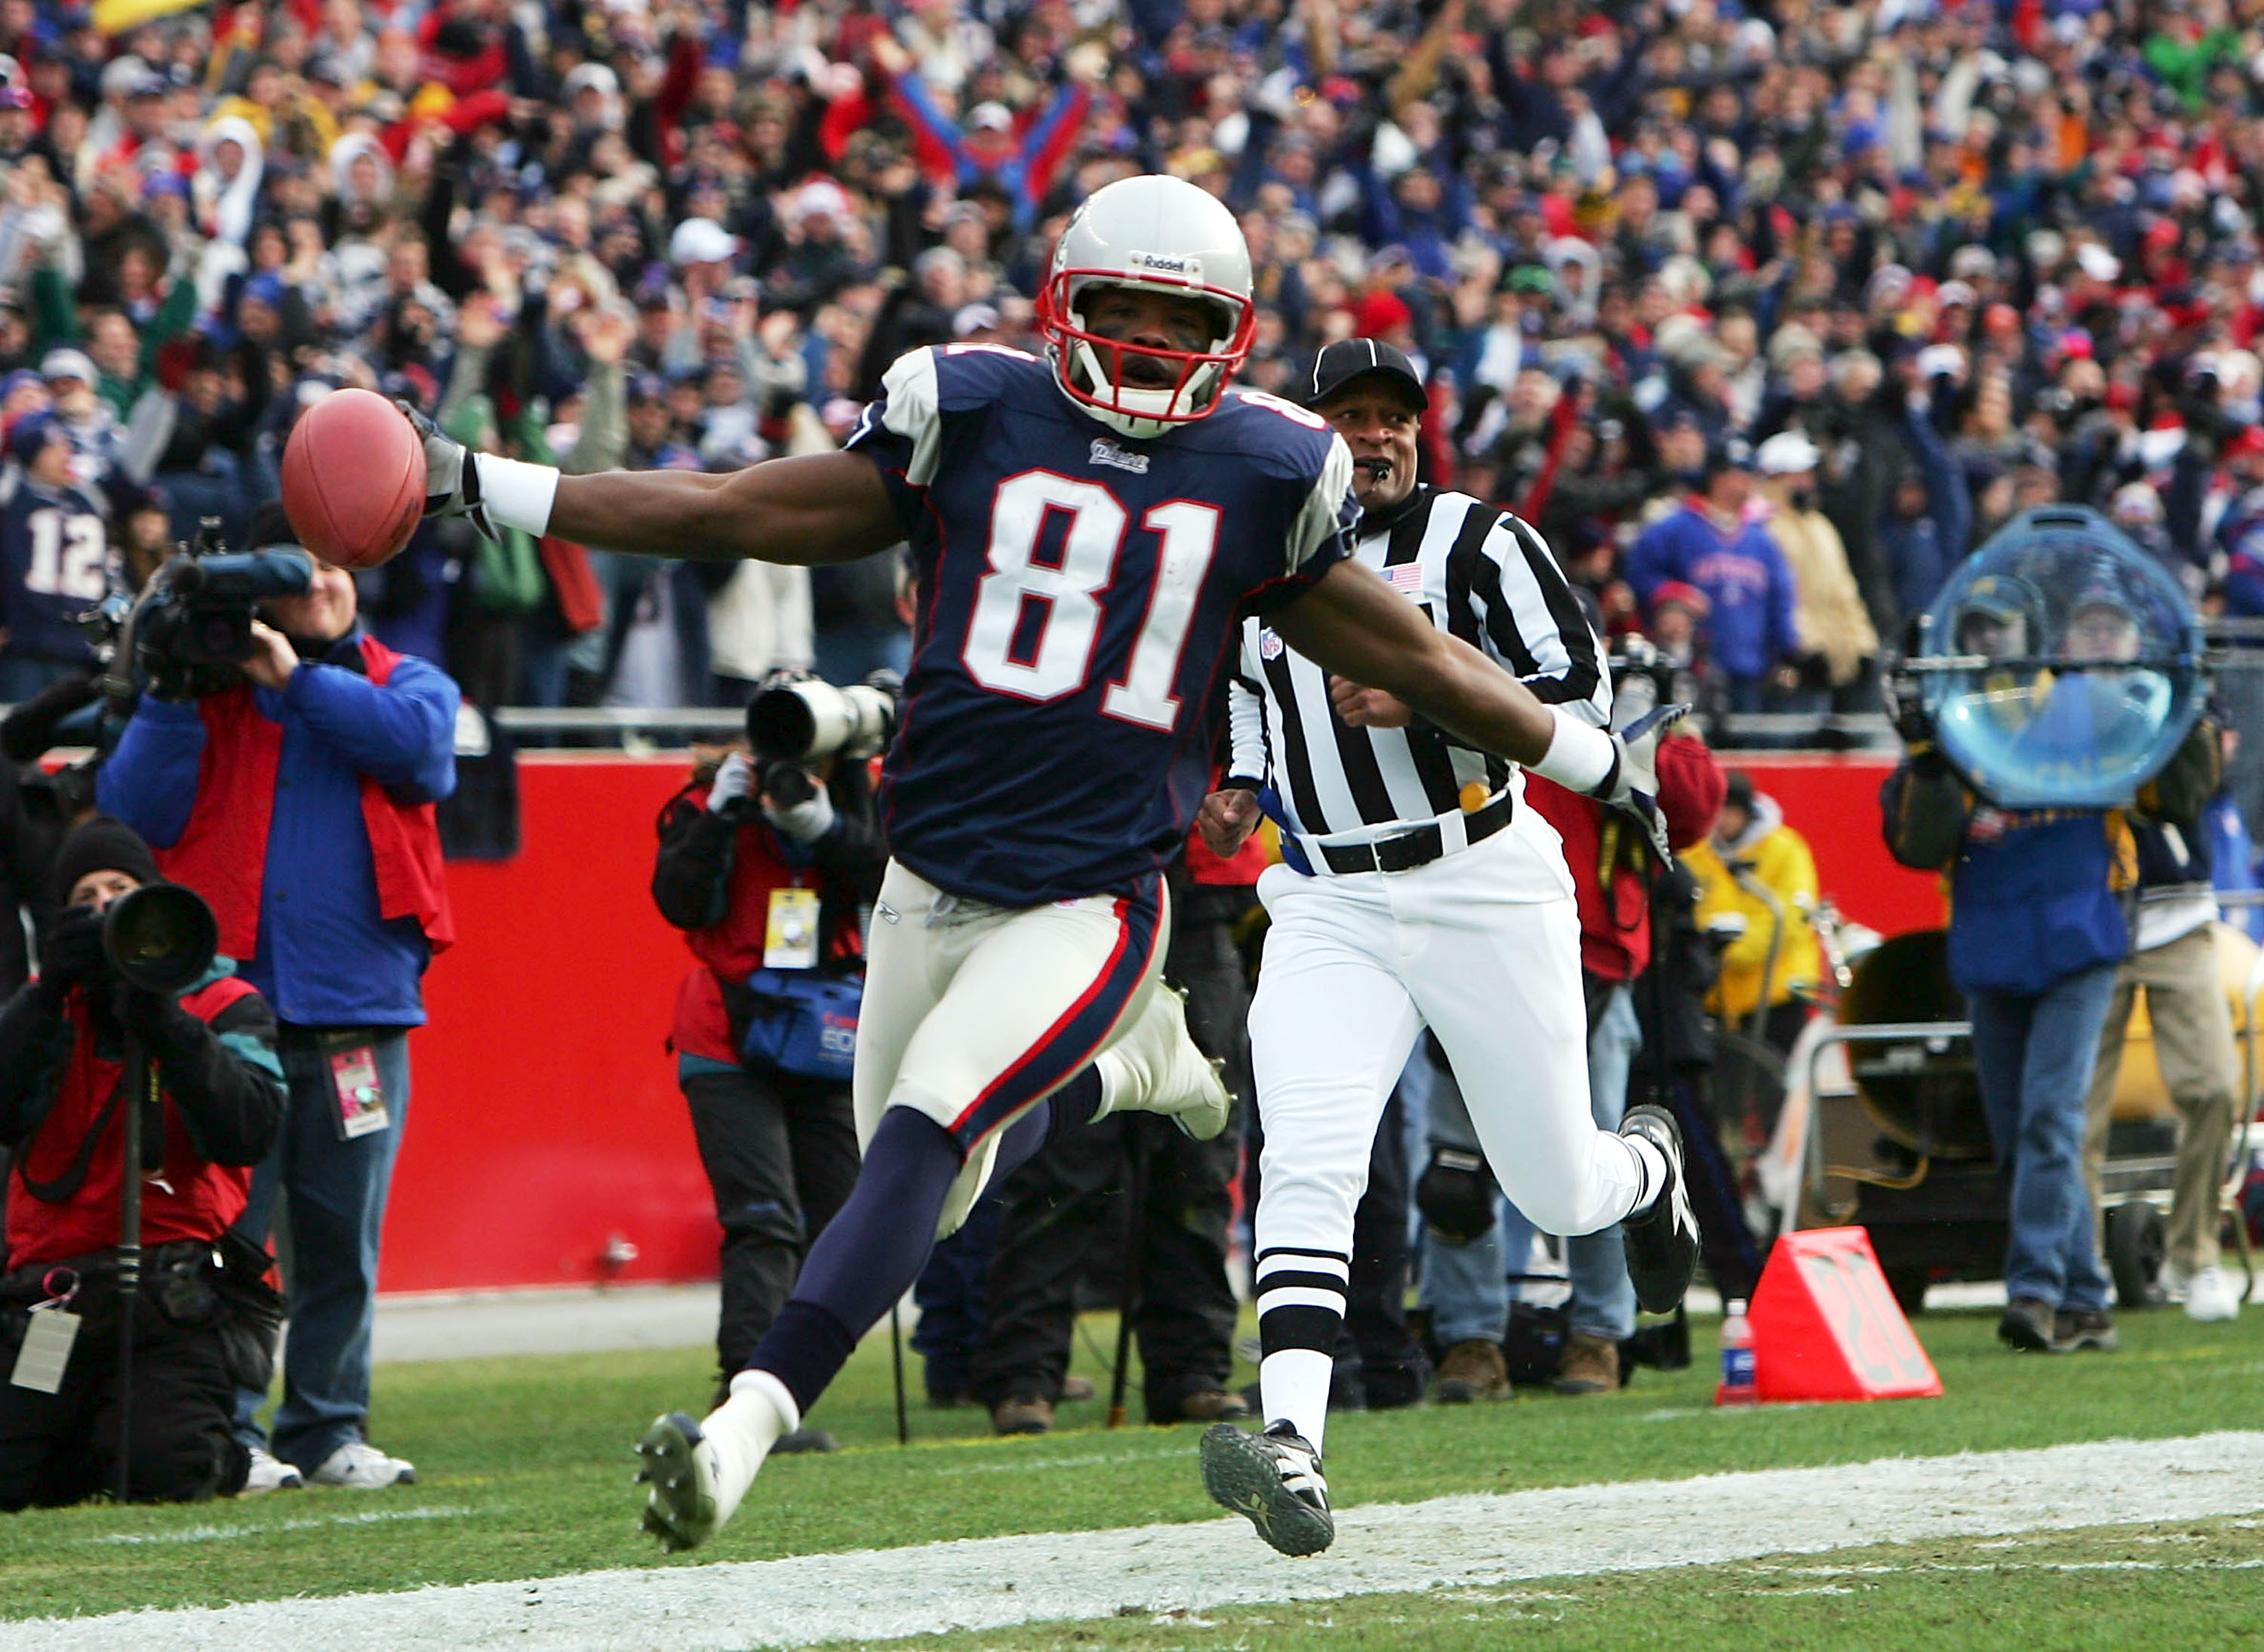 FOXBORO, MA - JANUARY 2:  Bethel Johnson #81 of the New England Patriots celebrates a punt return touchdown which was called back due to a penalty in the first quarter against the San Francisco 49ers during their game on January 2, 2005 at Gillette Stadiu